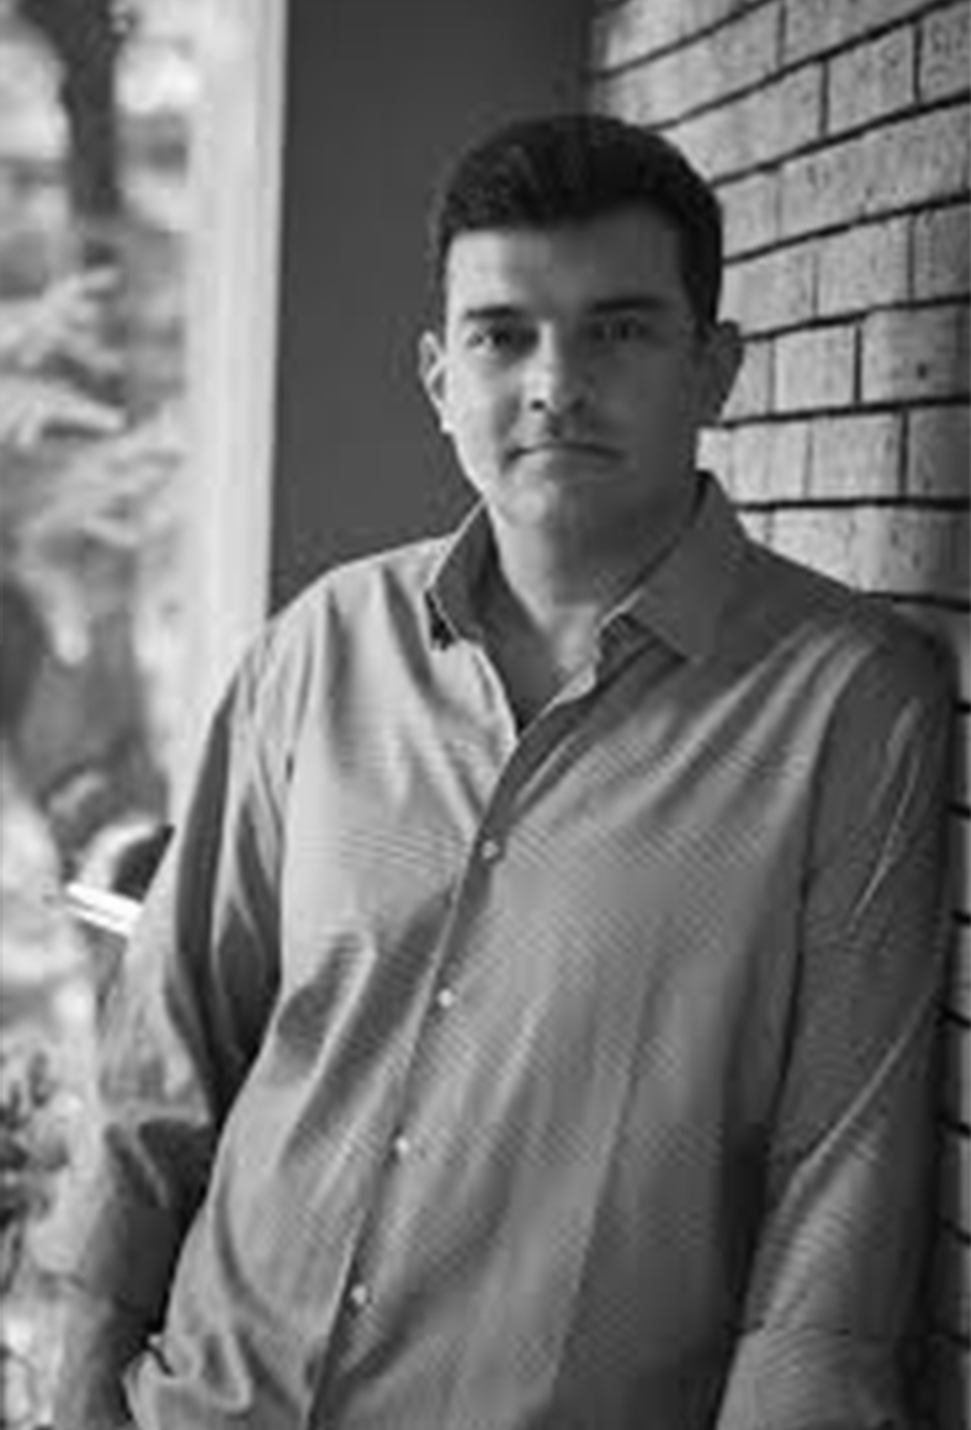 Siddharth Roy Kapur - Film Producer, All About Music virtual edition 2020 Speaker,